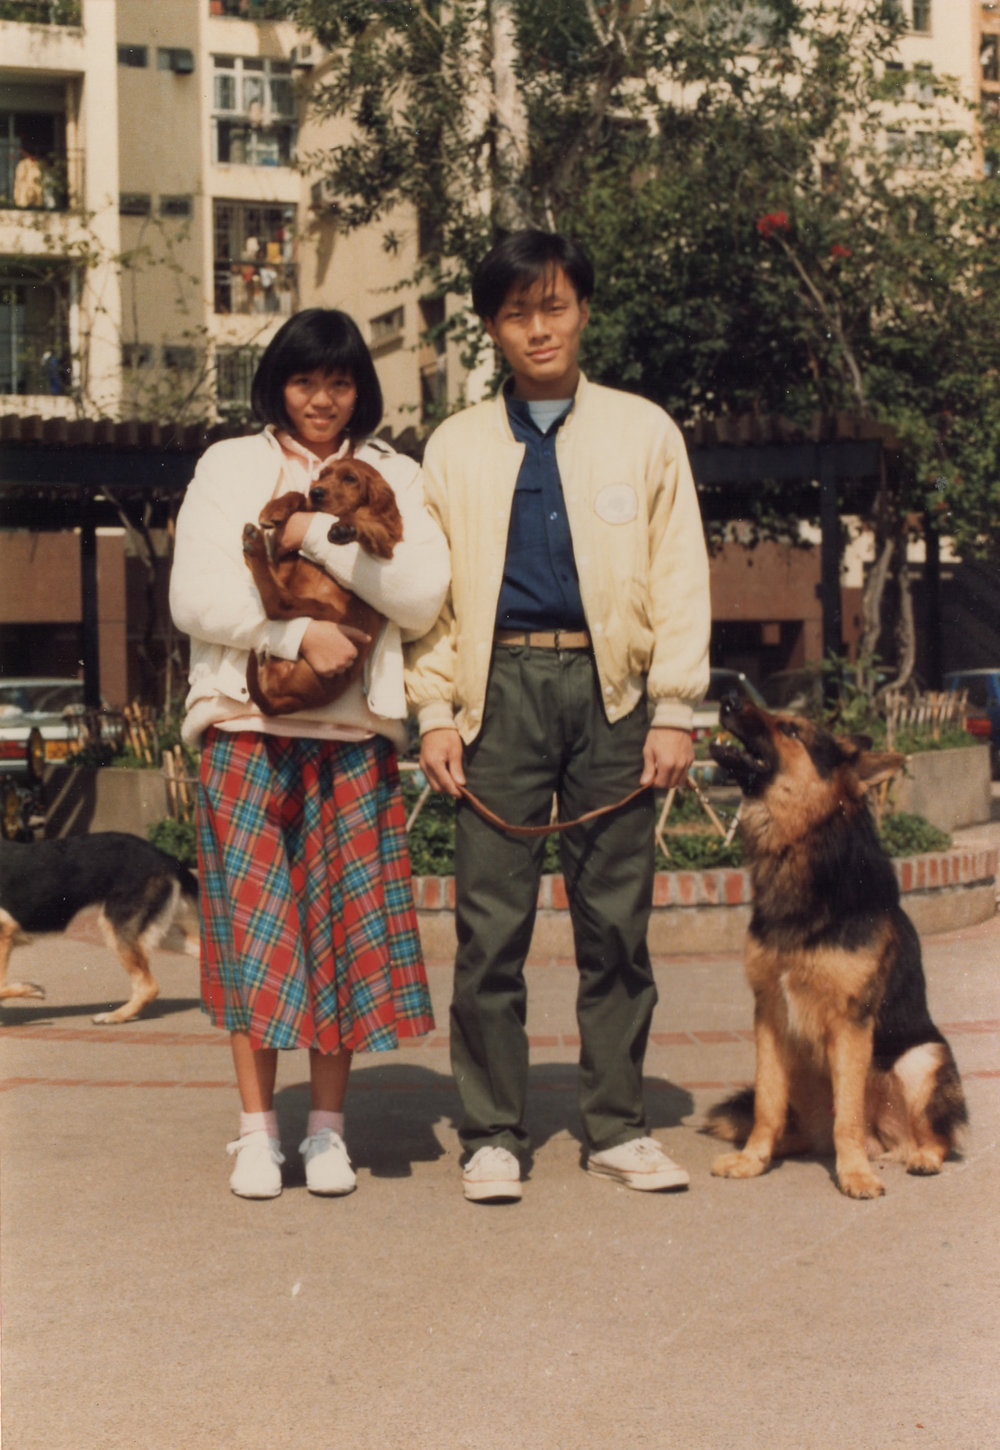 mom and dad walking dogs.jpg